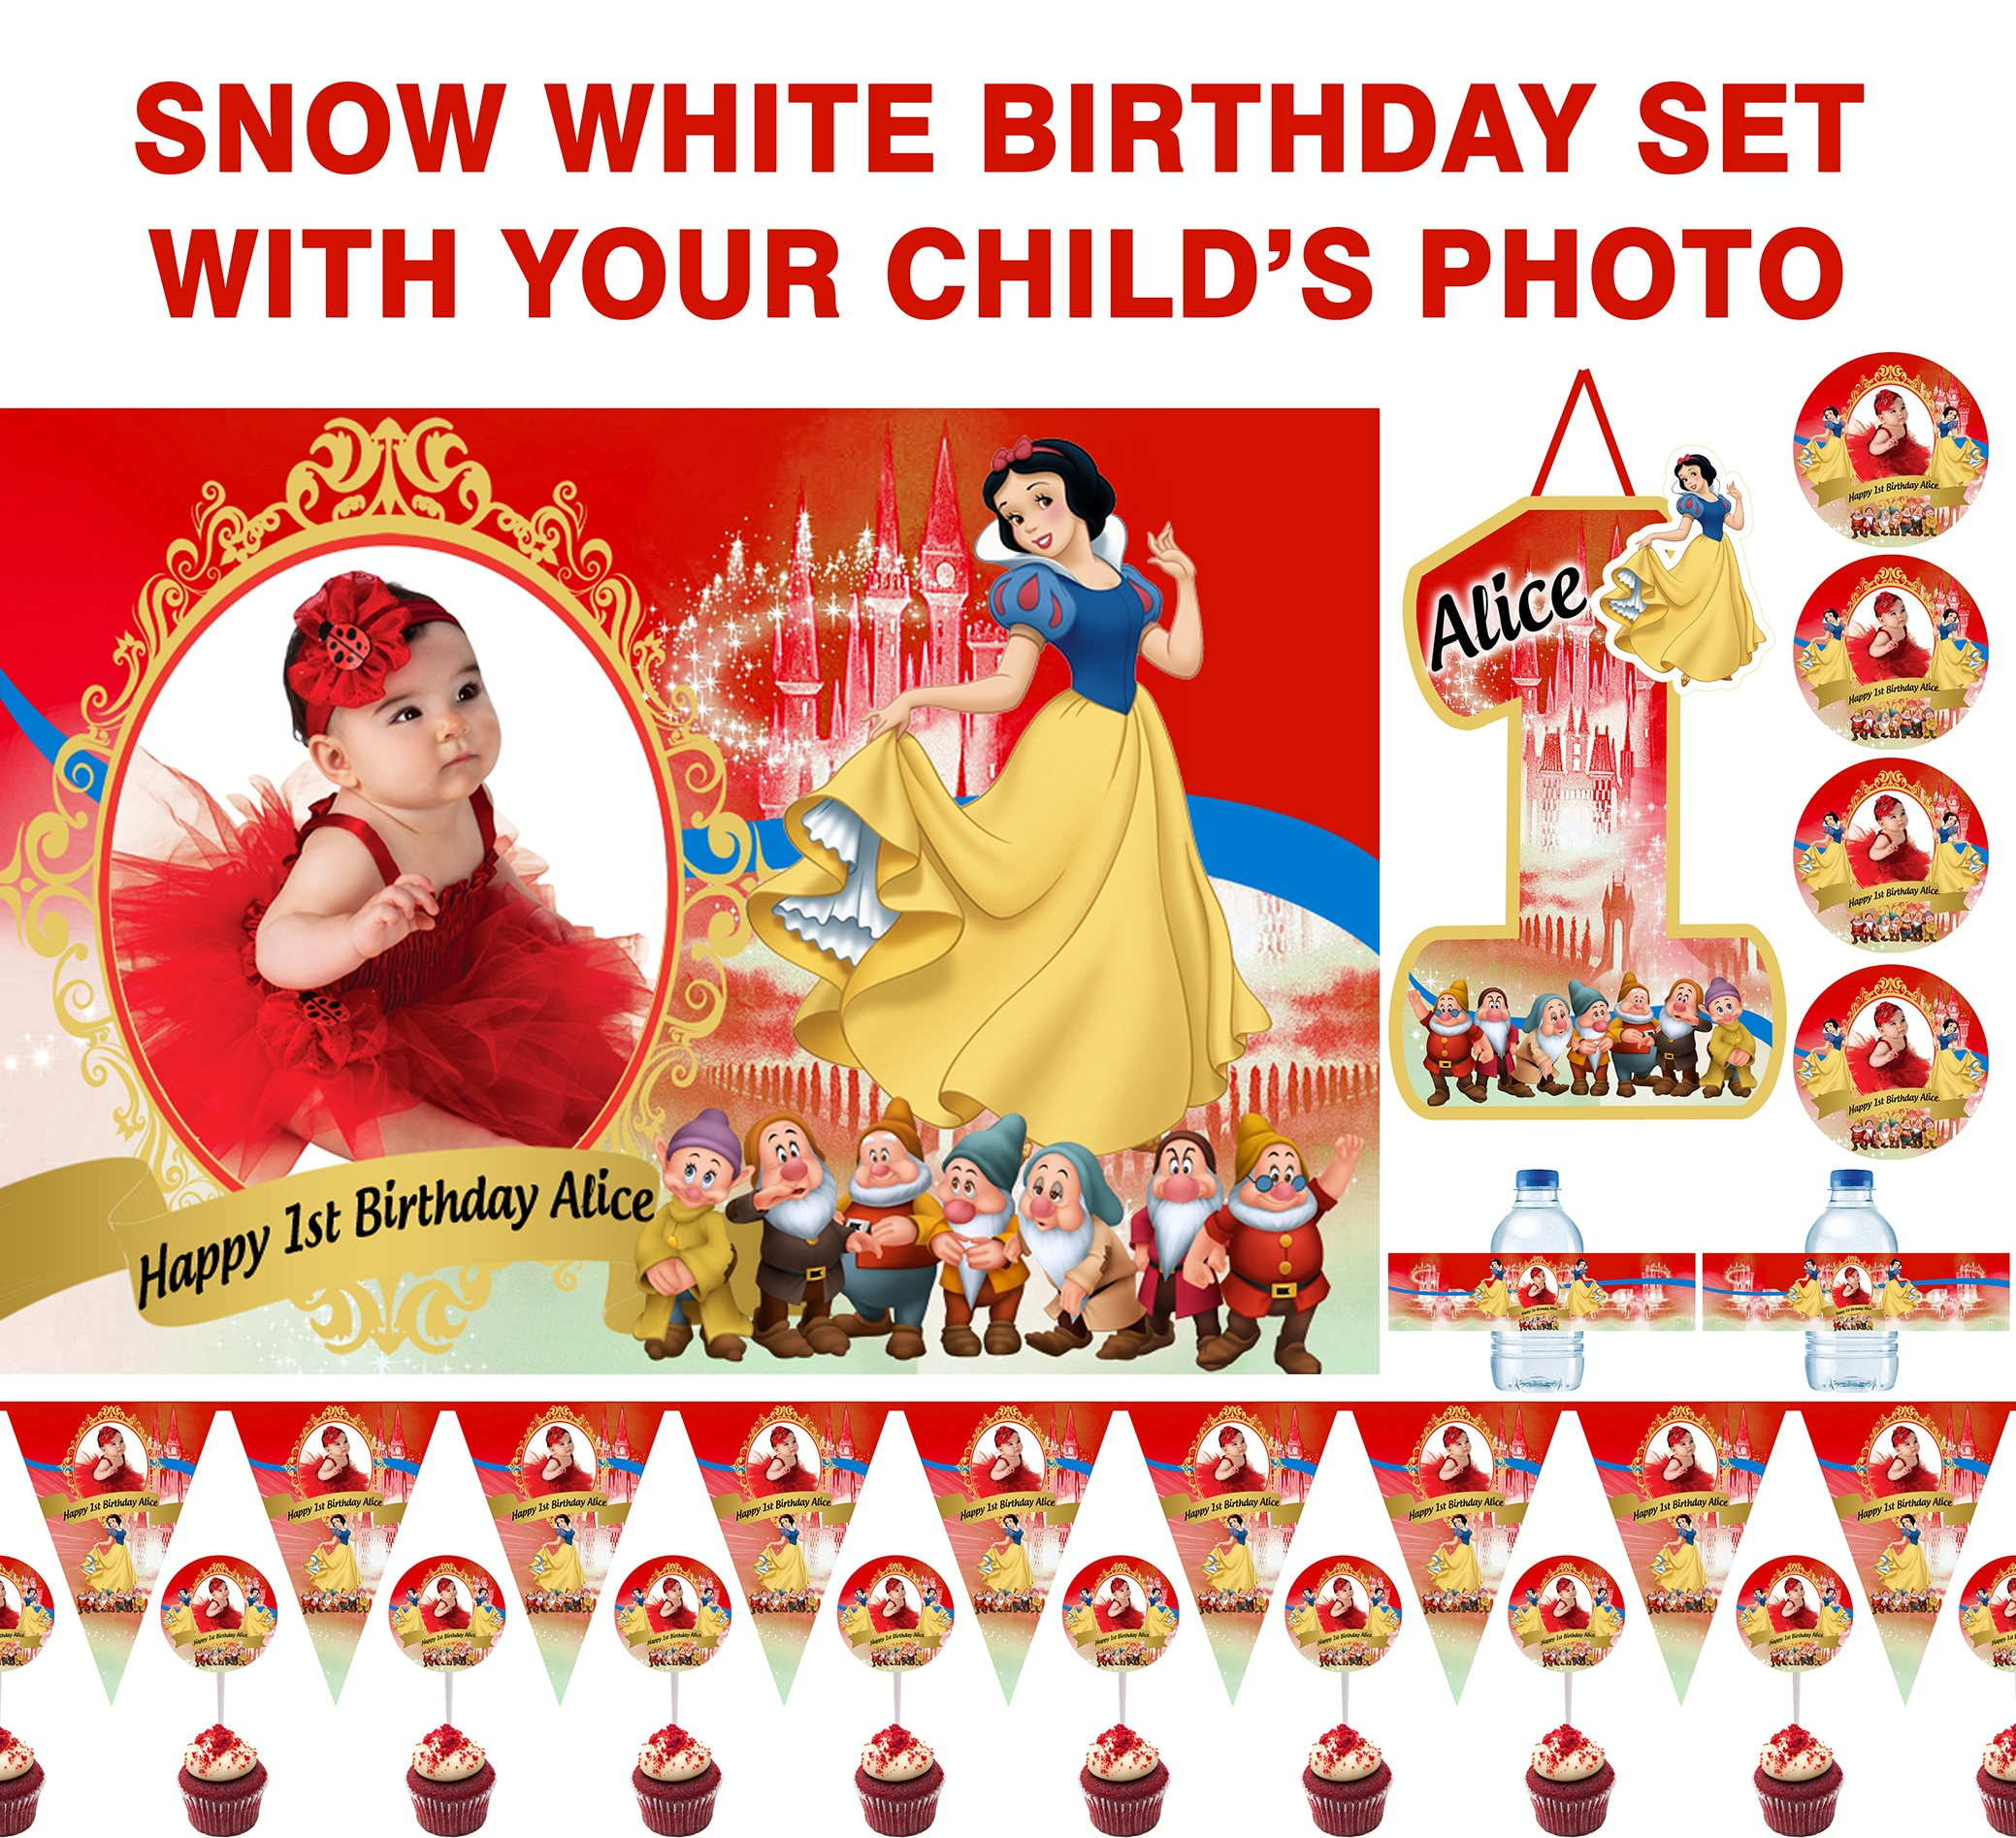 Personalized Snow White Birthday Set photo background, banner, water bottle labels, cupcake toppers, stickers